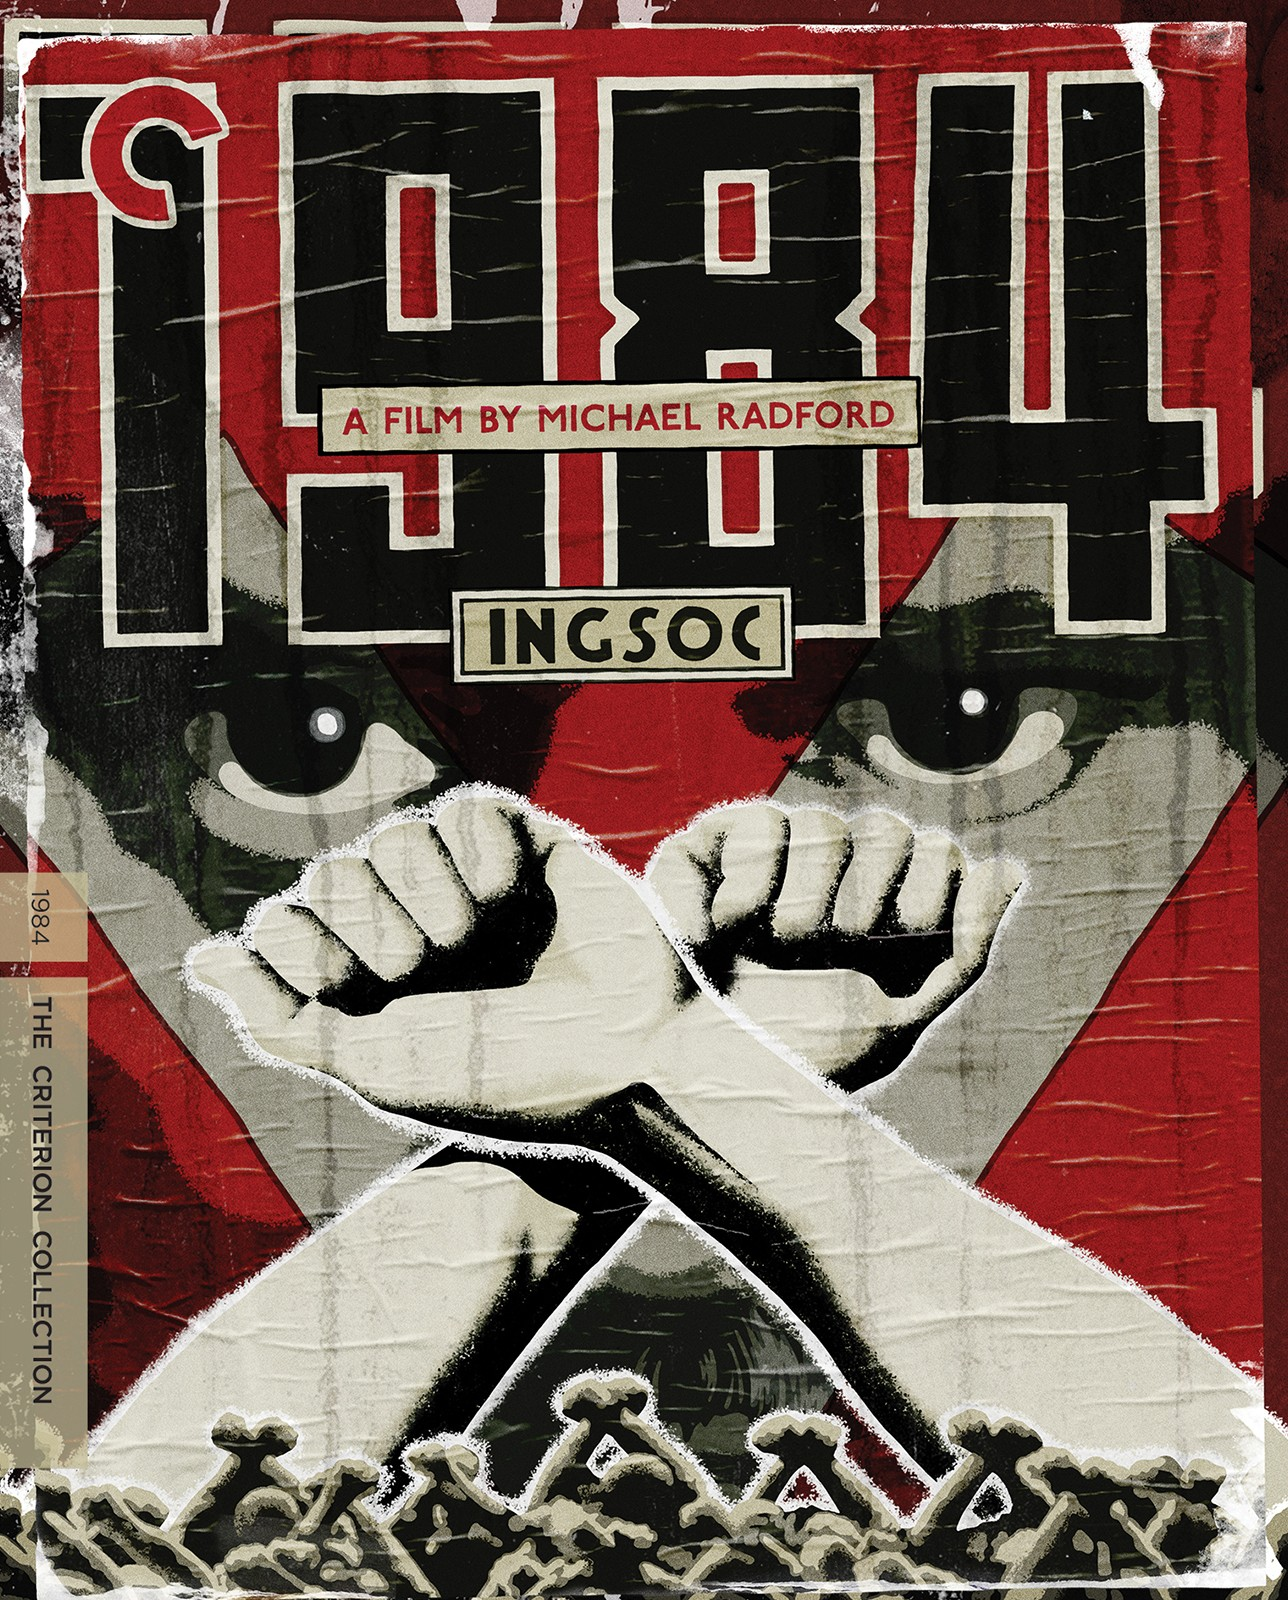 1984 1984 The Criterion Collection